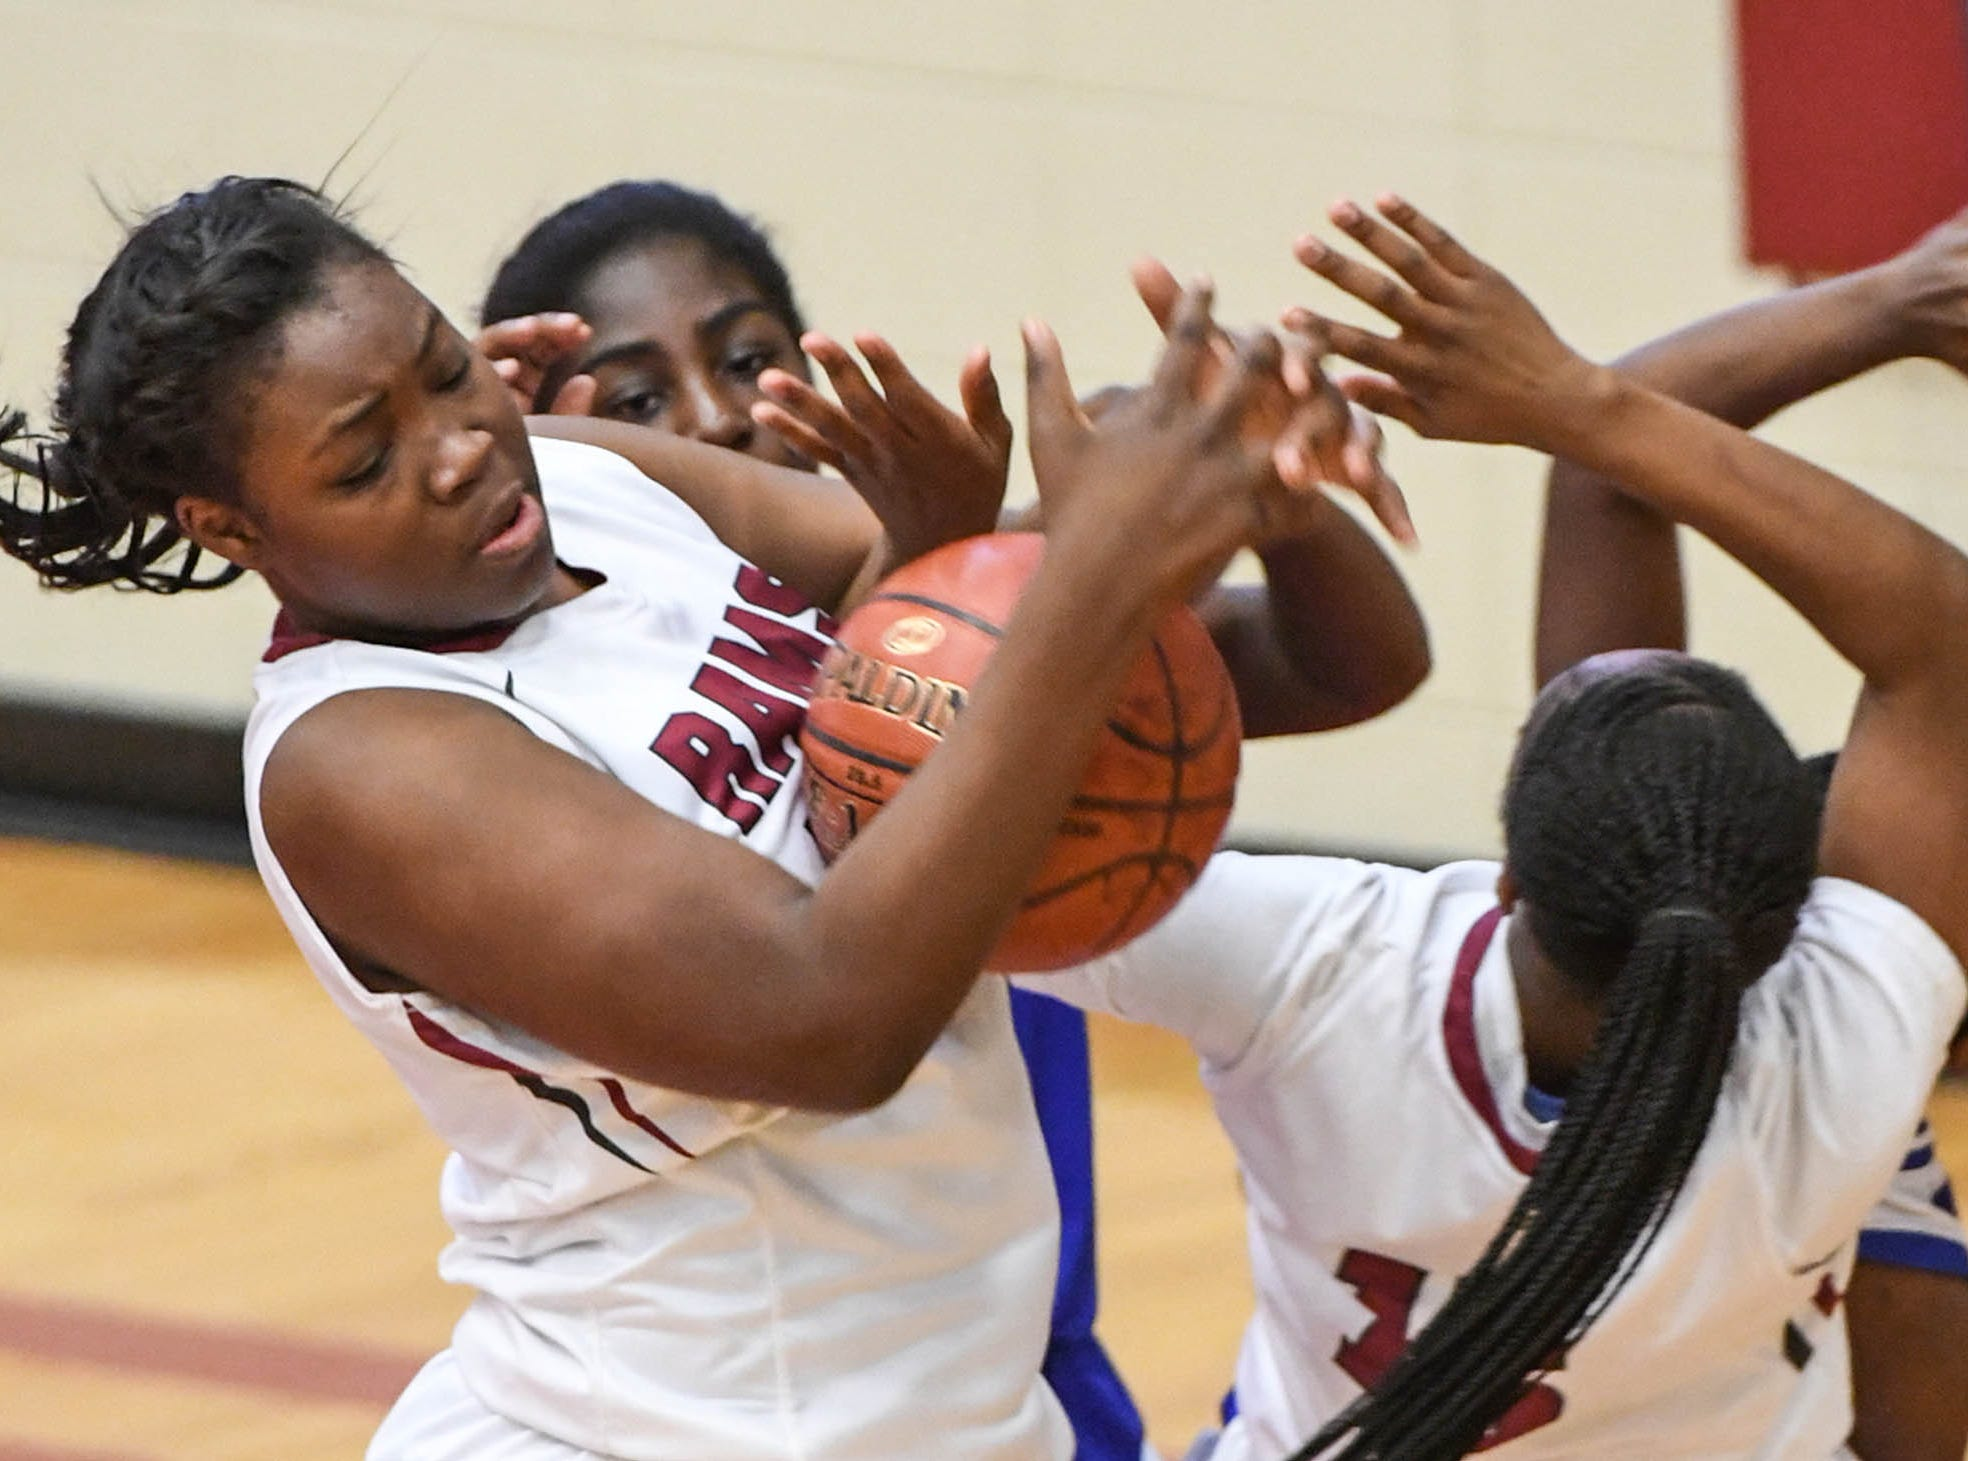 Westside sophomore Chyna Dixon(22) rebounds against Woodmont players during the first quarter at Westside High School in Anderson on Tuesday.